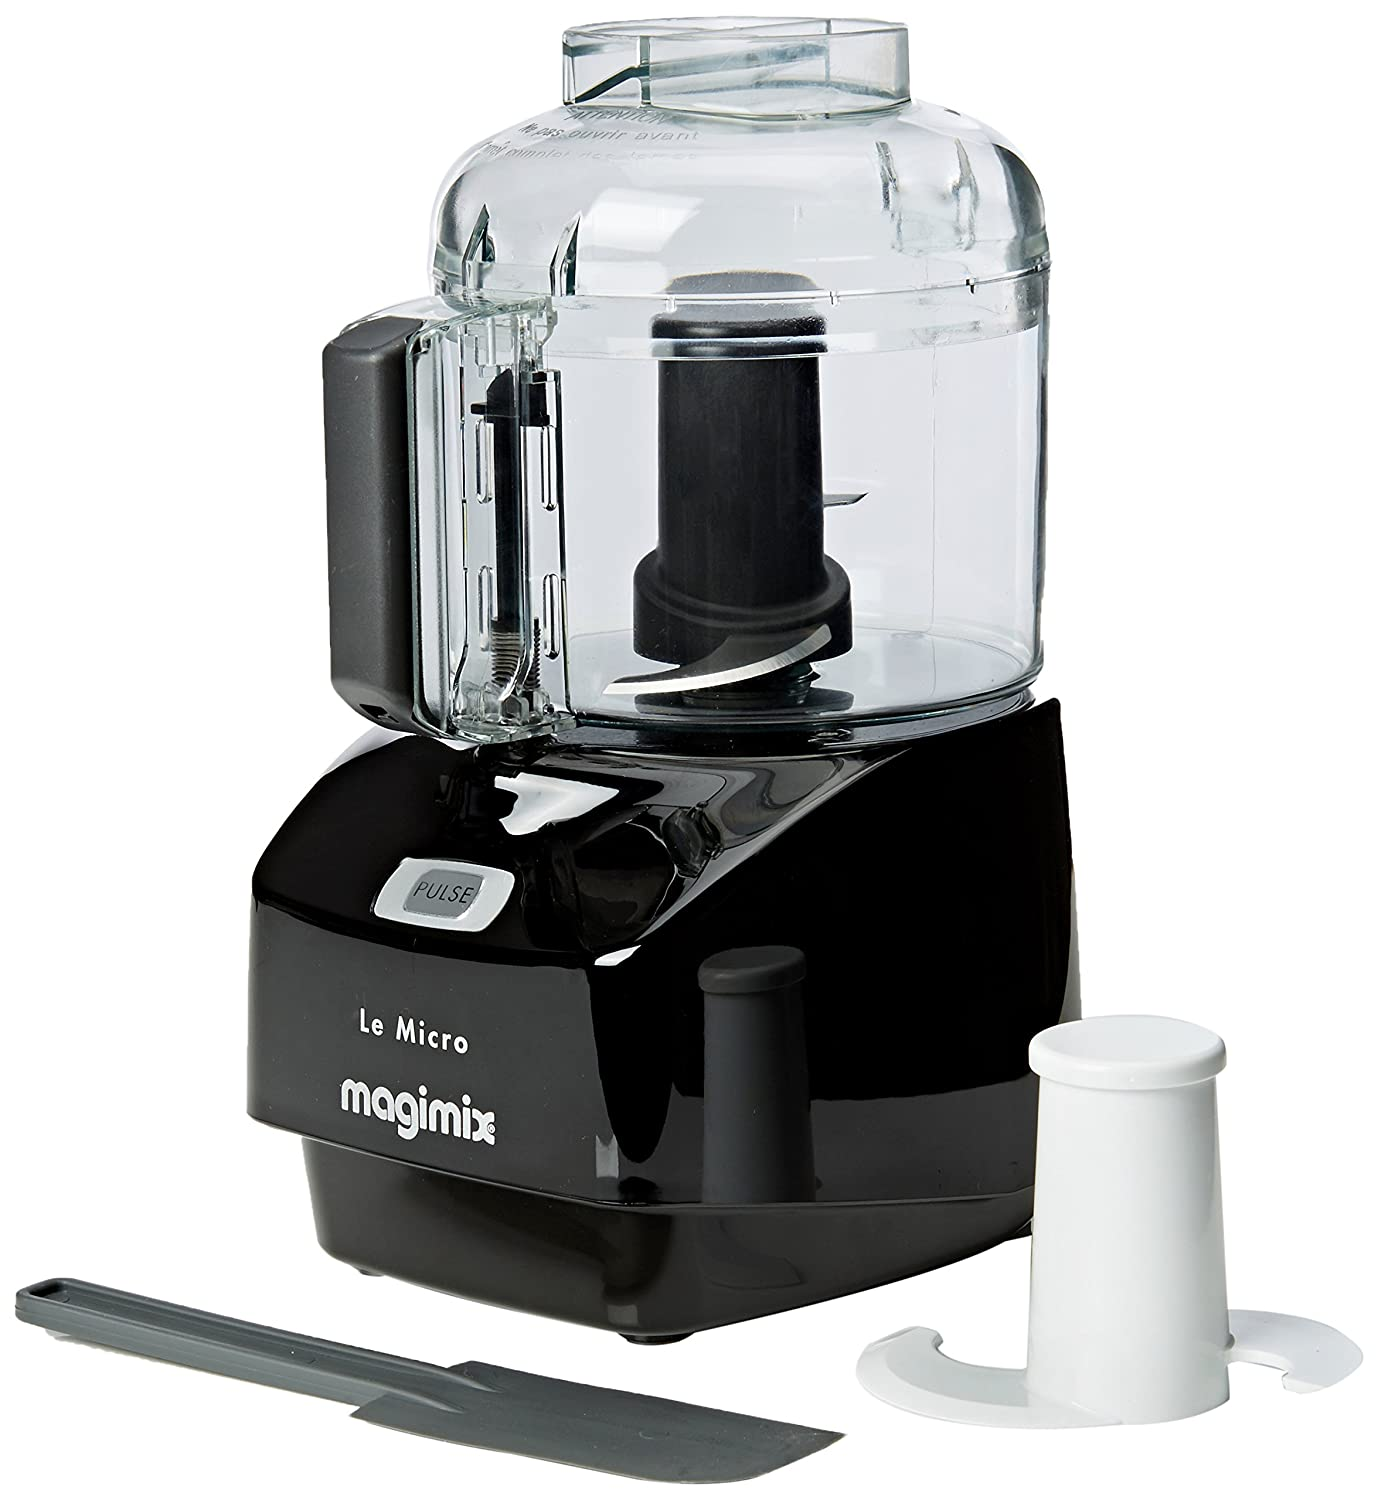 Sabatier Chopper: Magimix Le Micro Food Processor 18113